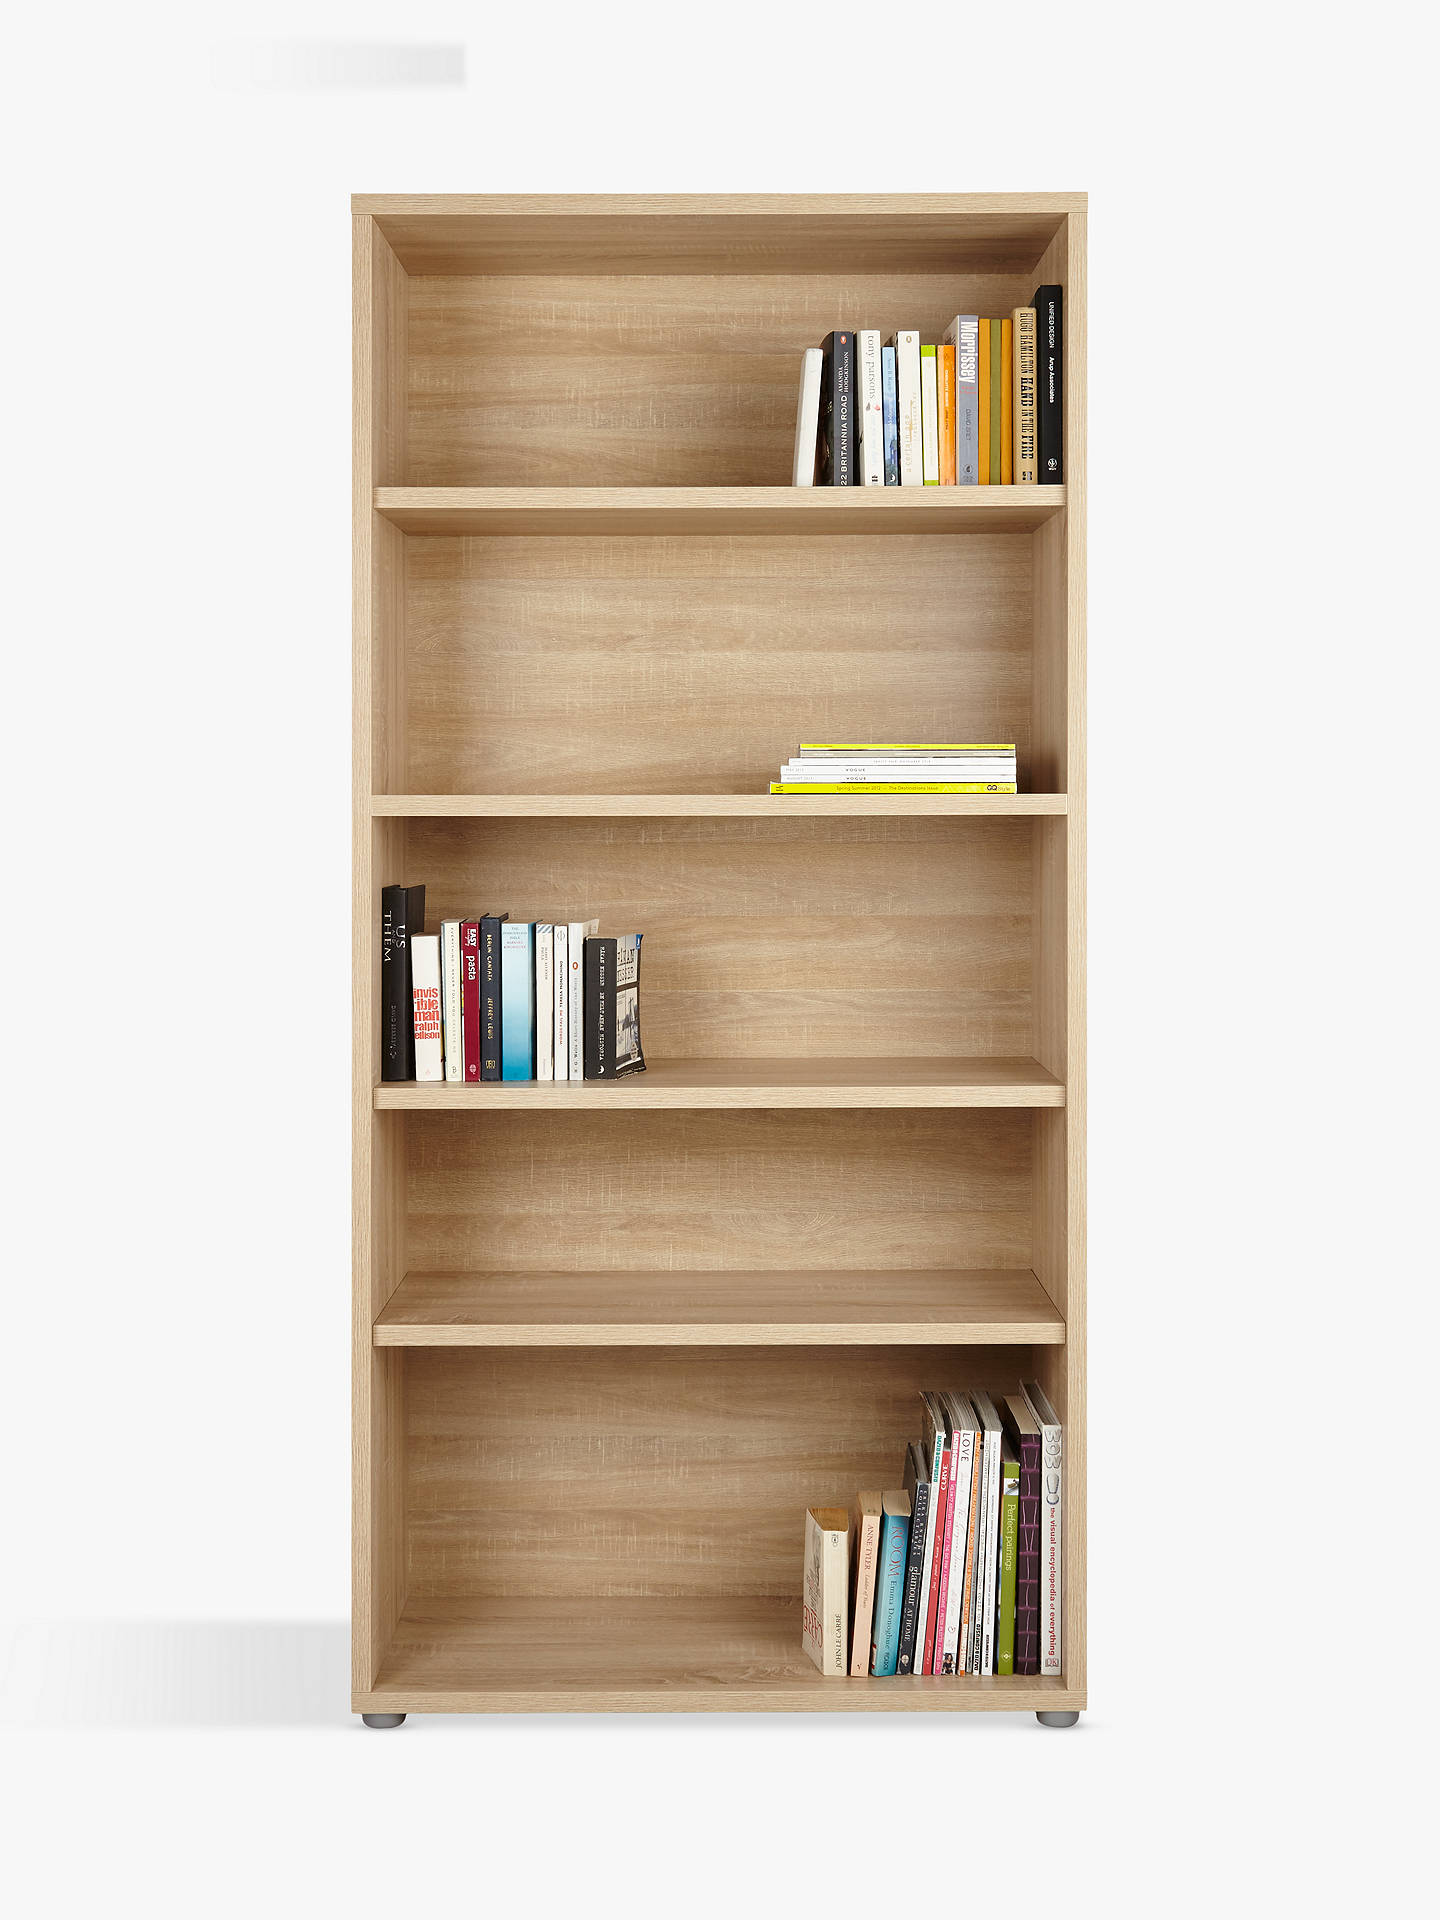 BuyJohn Lewis & Partners Estelle Medium Bookcase Online at johnlewis.com